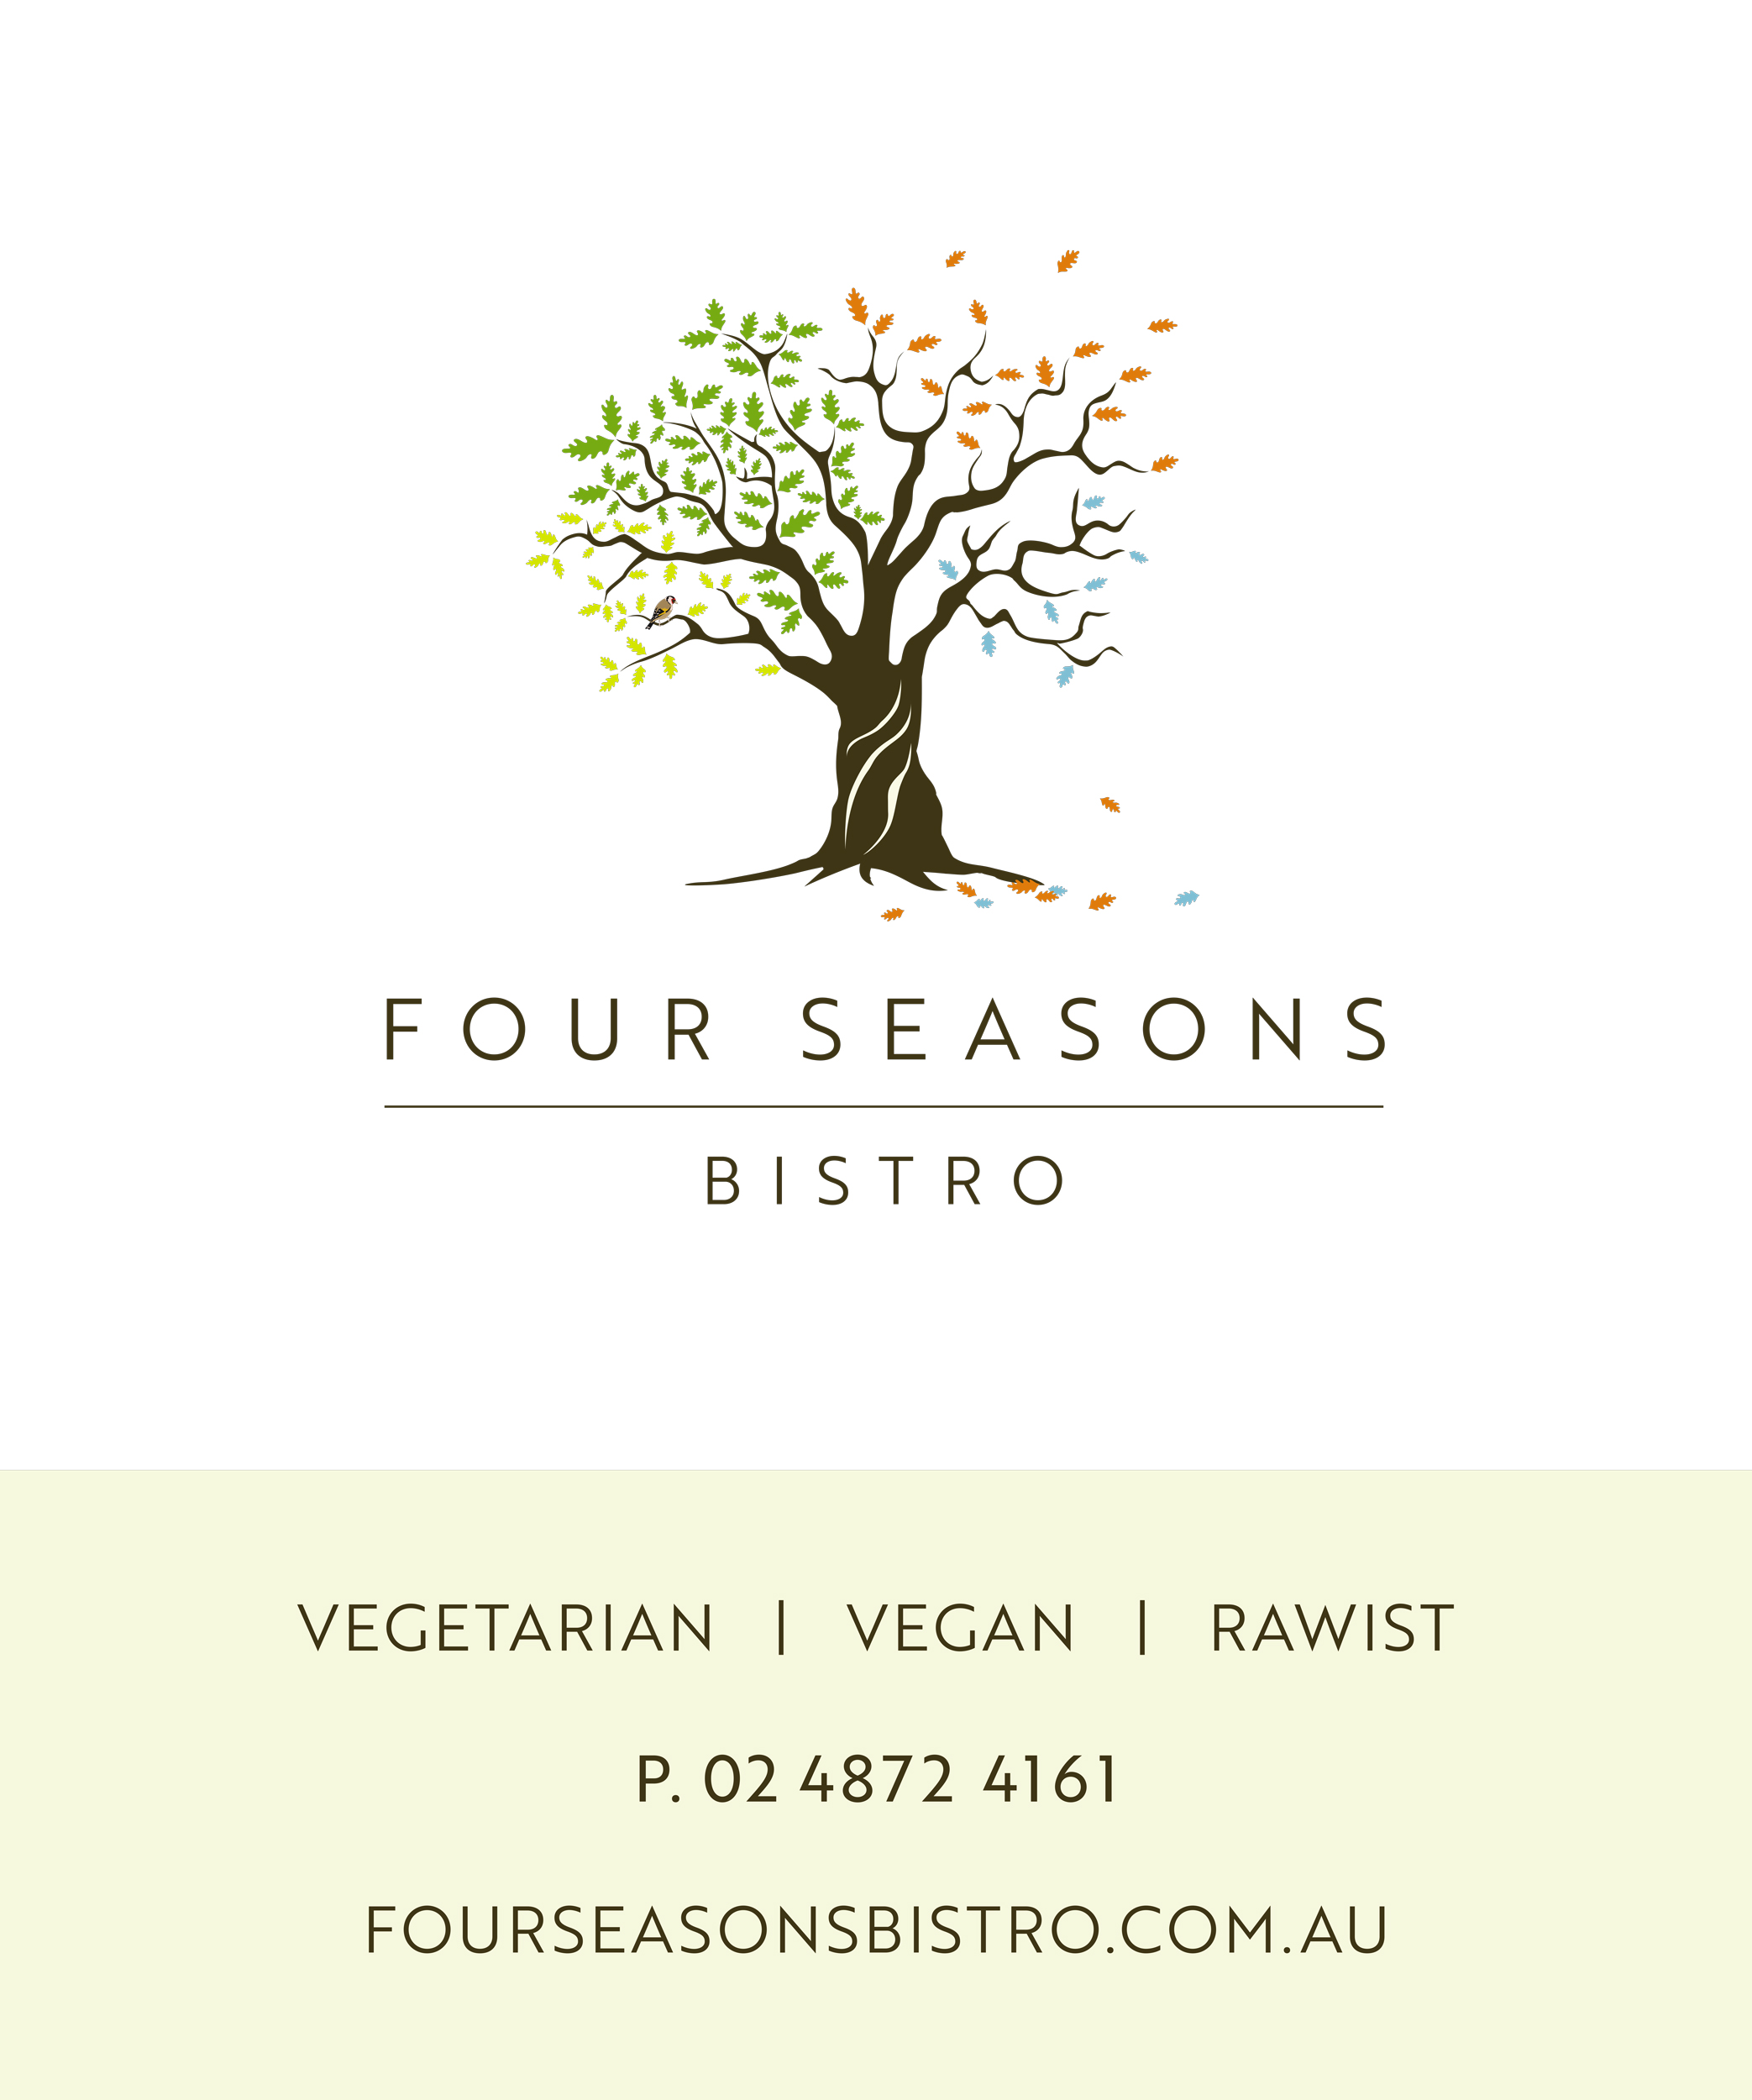 Window Sign for Four Seasons Bistro